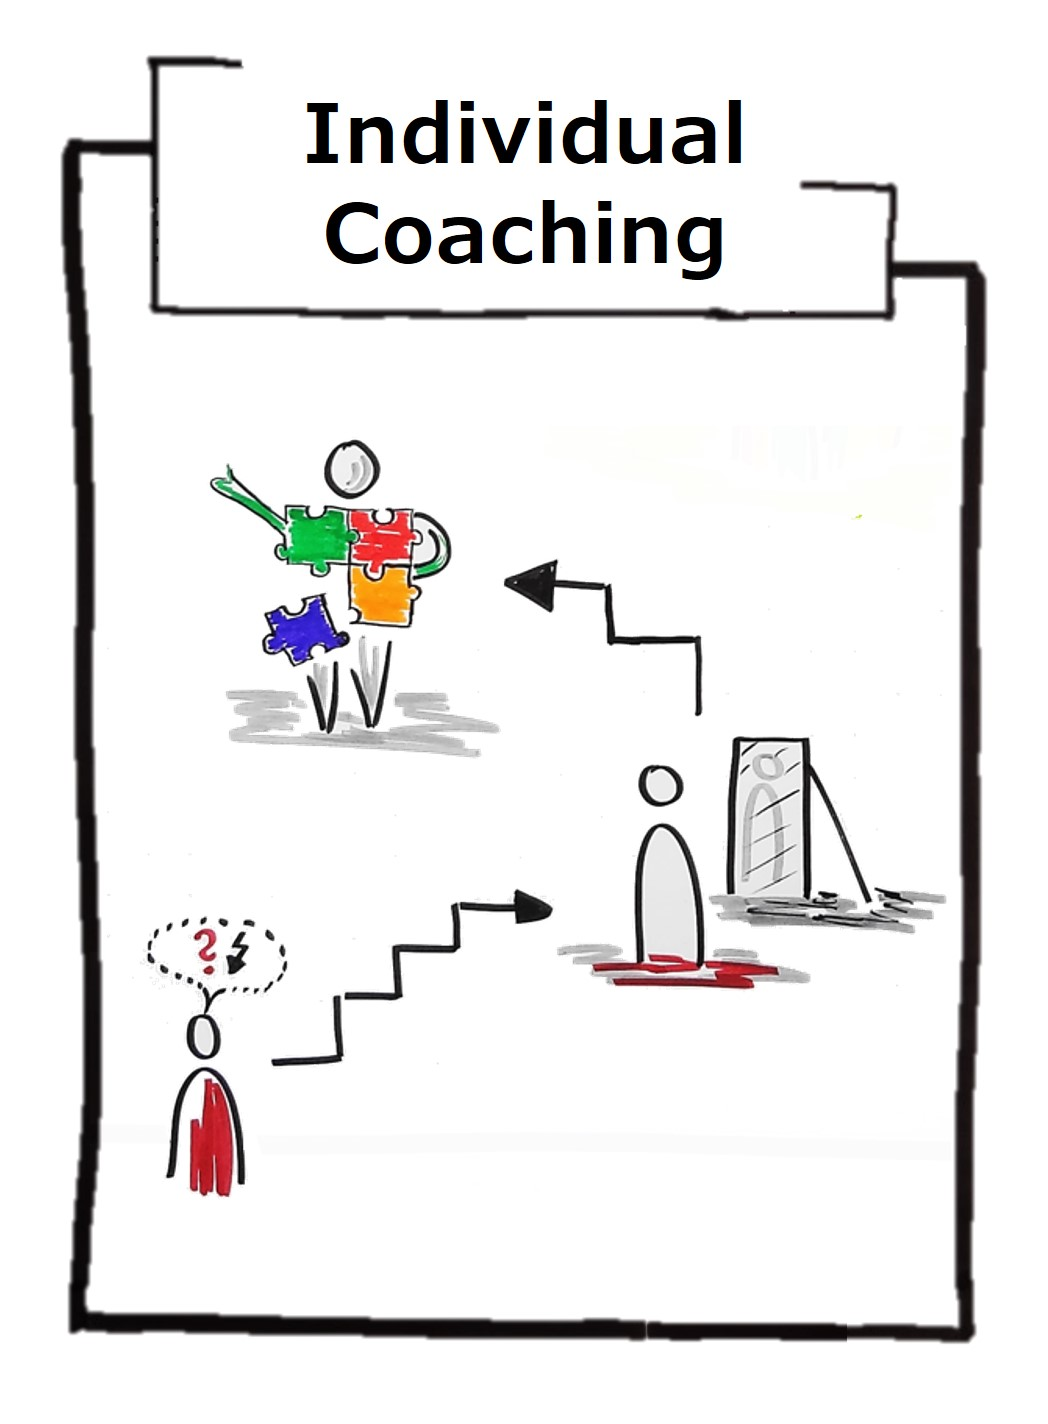 Individual coaching as a personal and confidential development measure